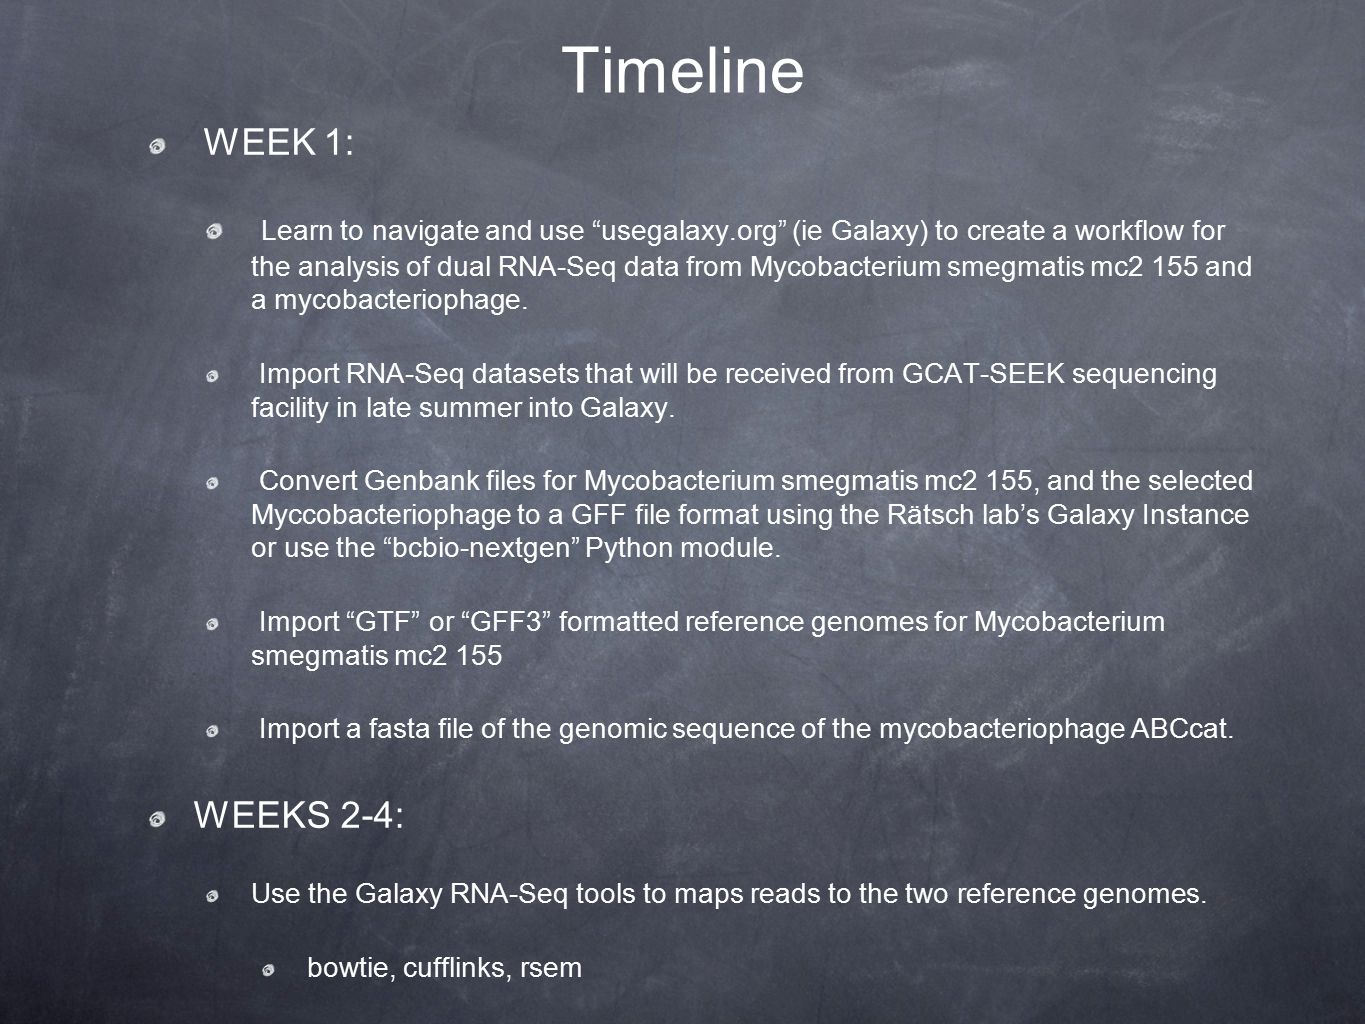 Timeline WEEK 1: Learn to navigate and use usegalaxy.org (ie Galaxy) to create a workflow for the analysis of dual RNA-Seq data from Mycobacterium smegmatis mc2 155 and a mycobacteriophage.